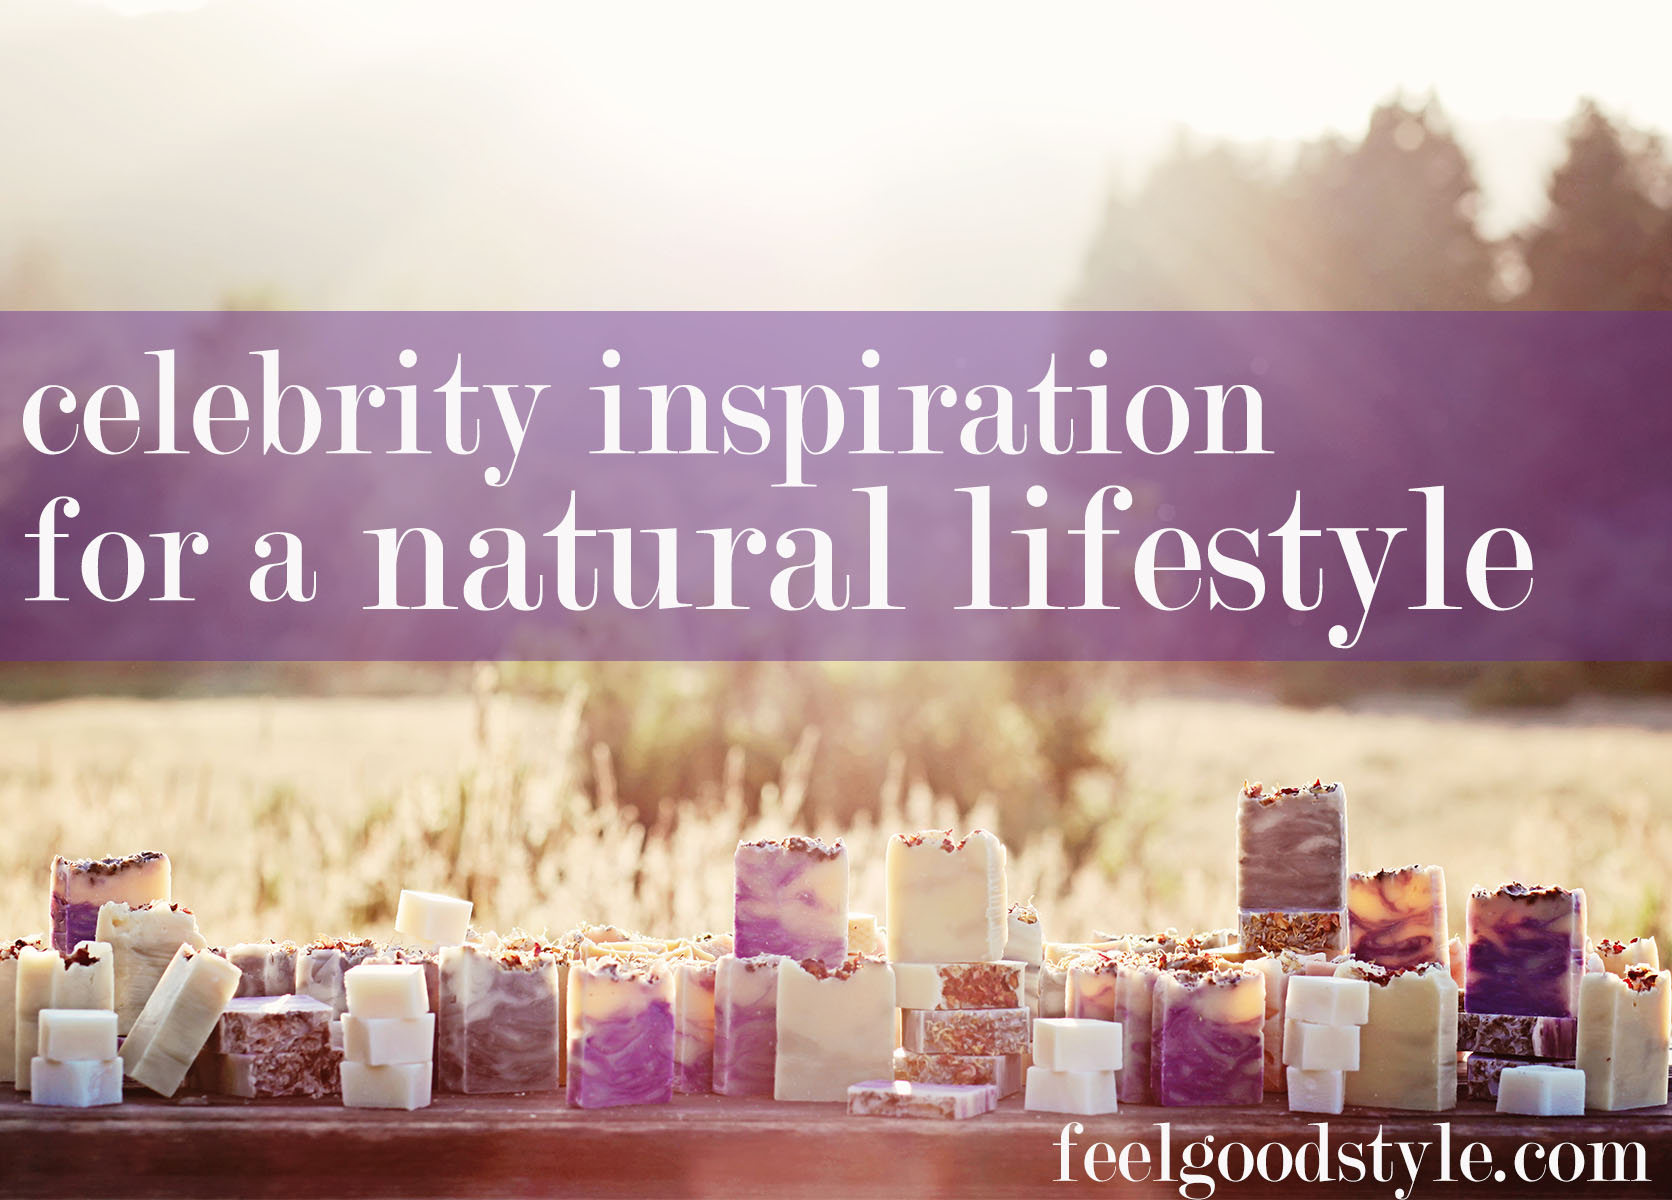 Celebrity muses for an eco-conscious lifestyle